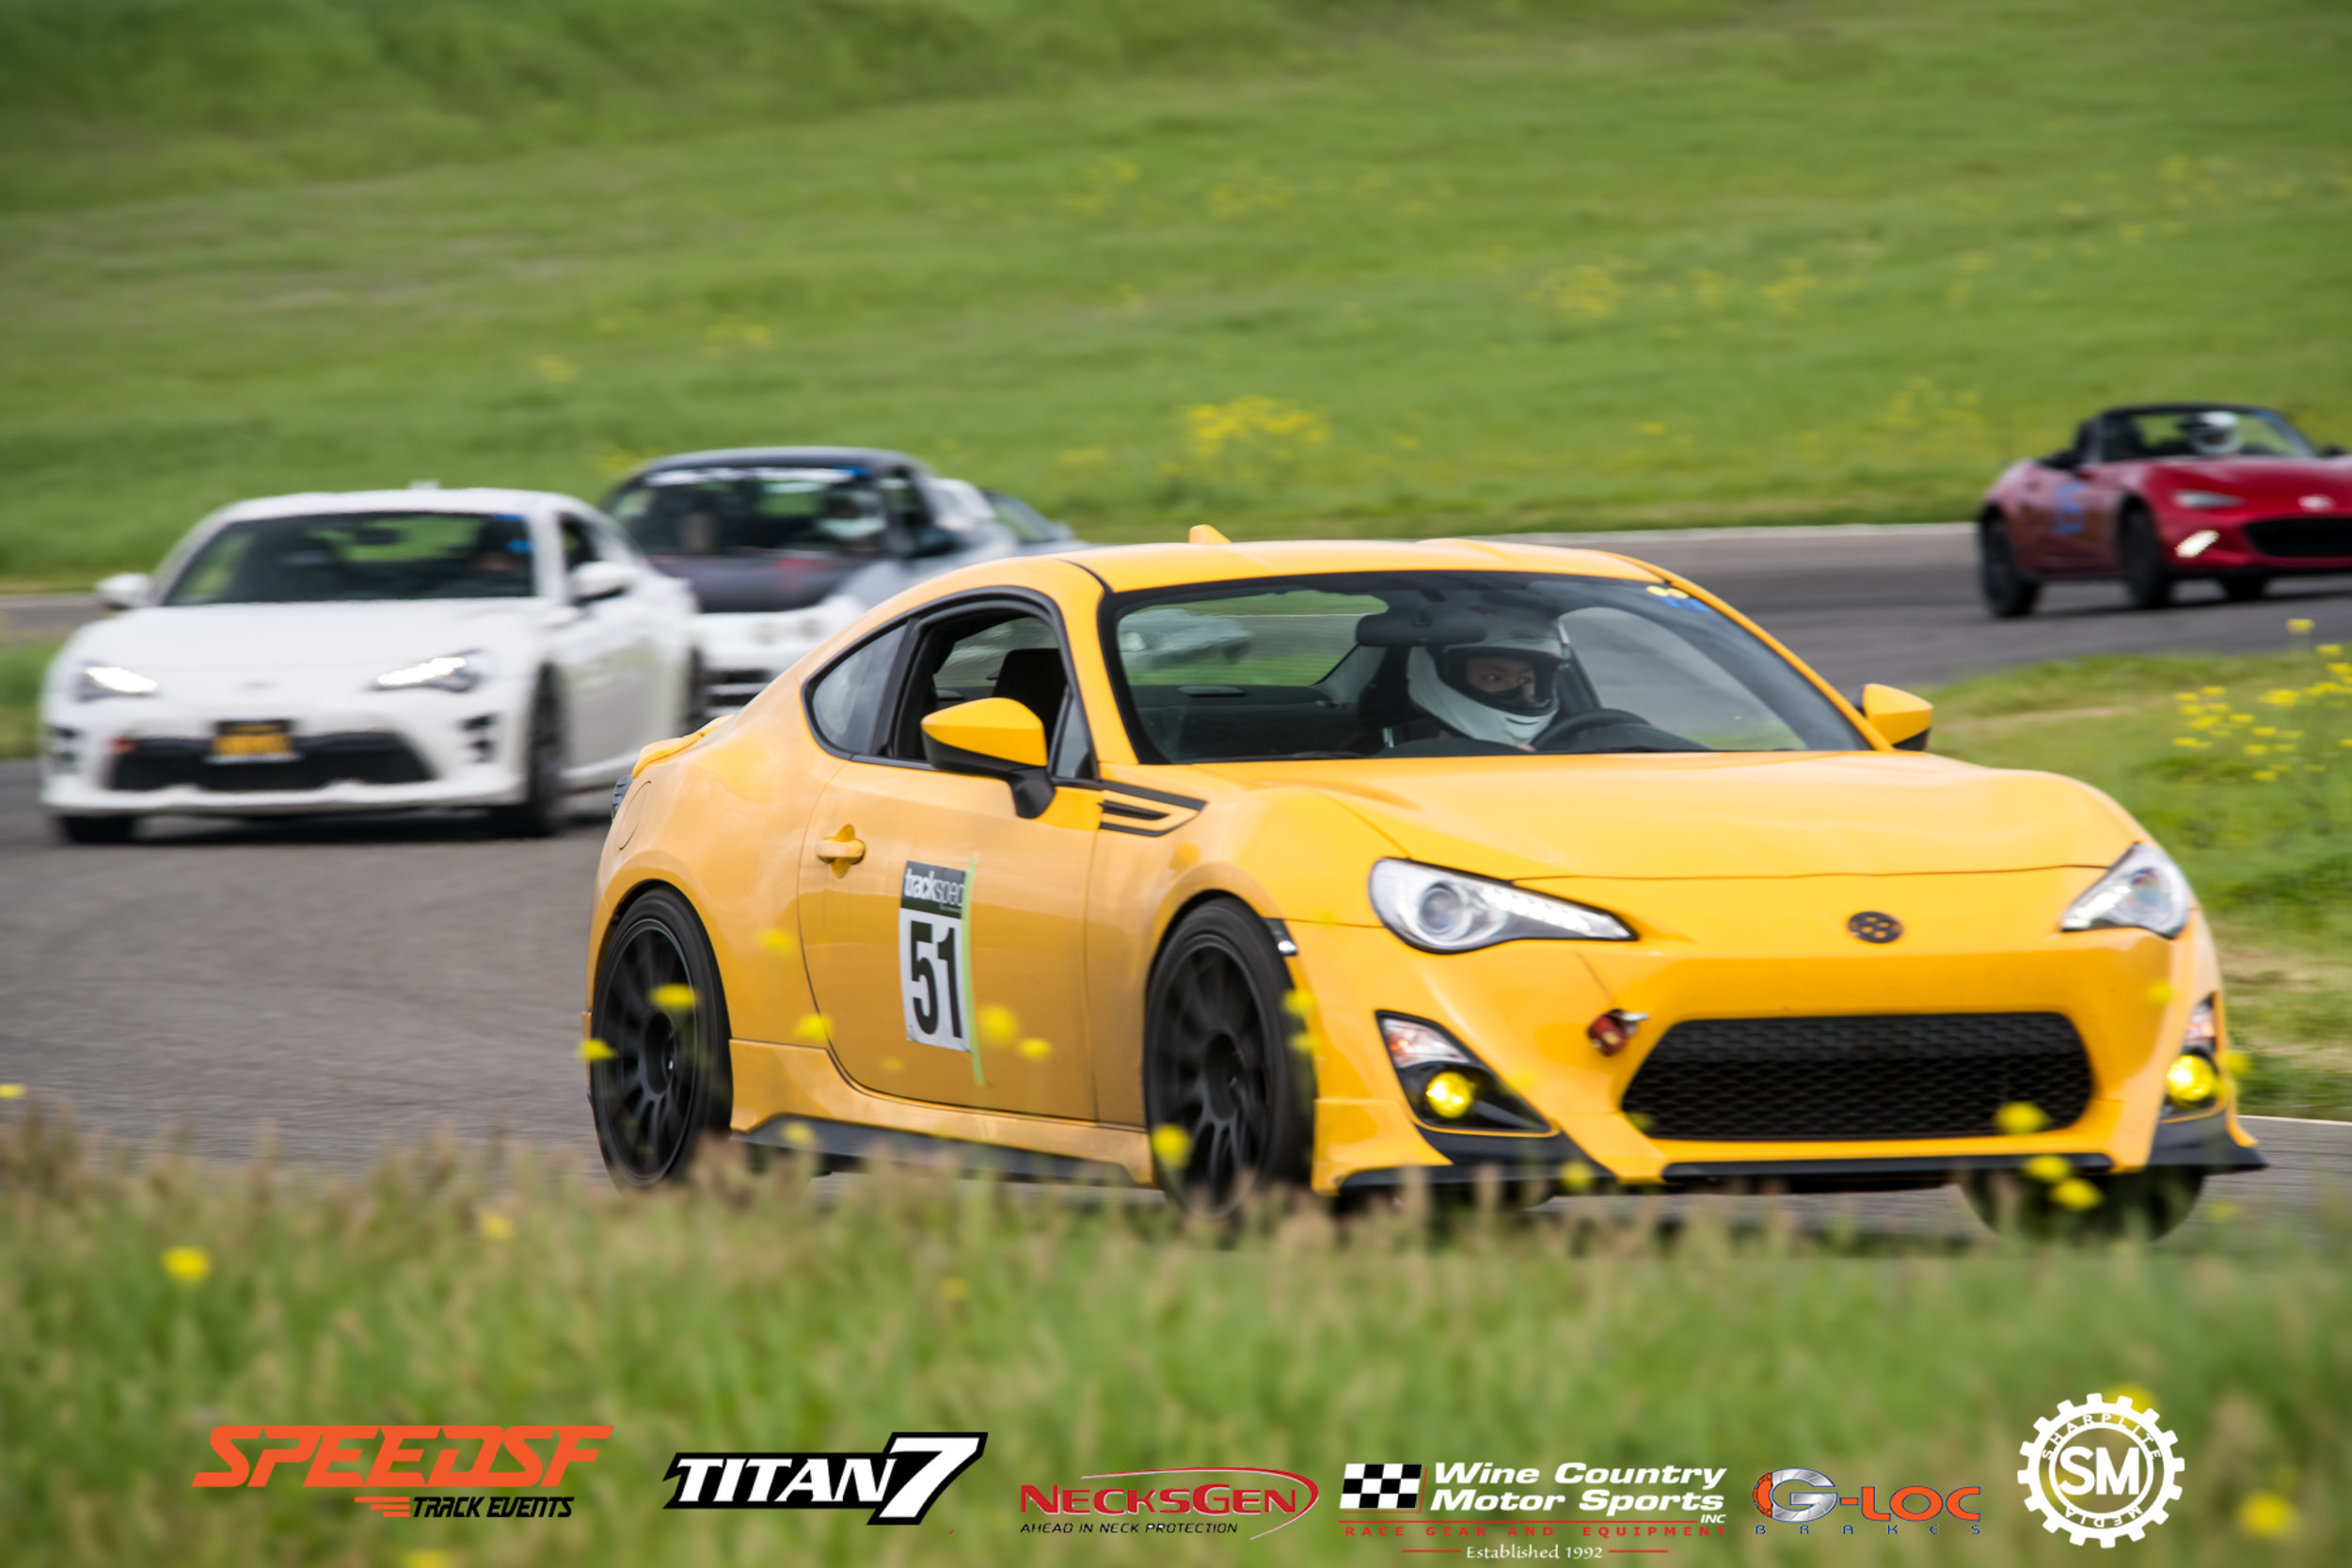 SpeedSF at Thunderhill West - 04_07_2019 - TRACK-2698.jpg